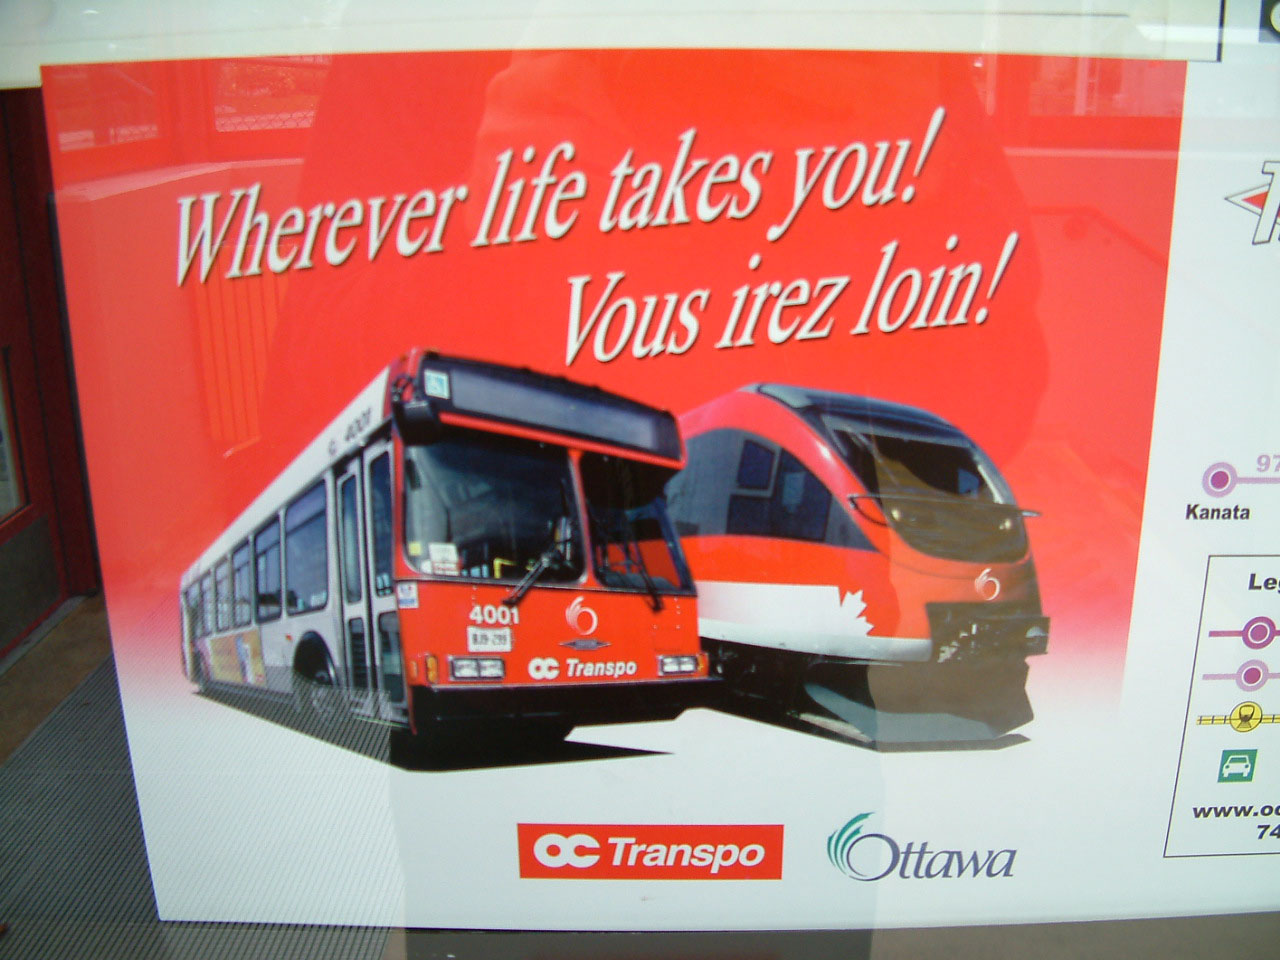 Oc transpo business plan ocr ict coursework as level